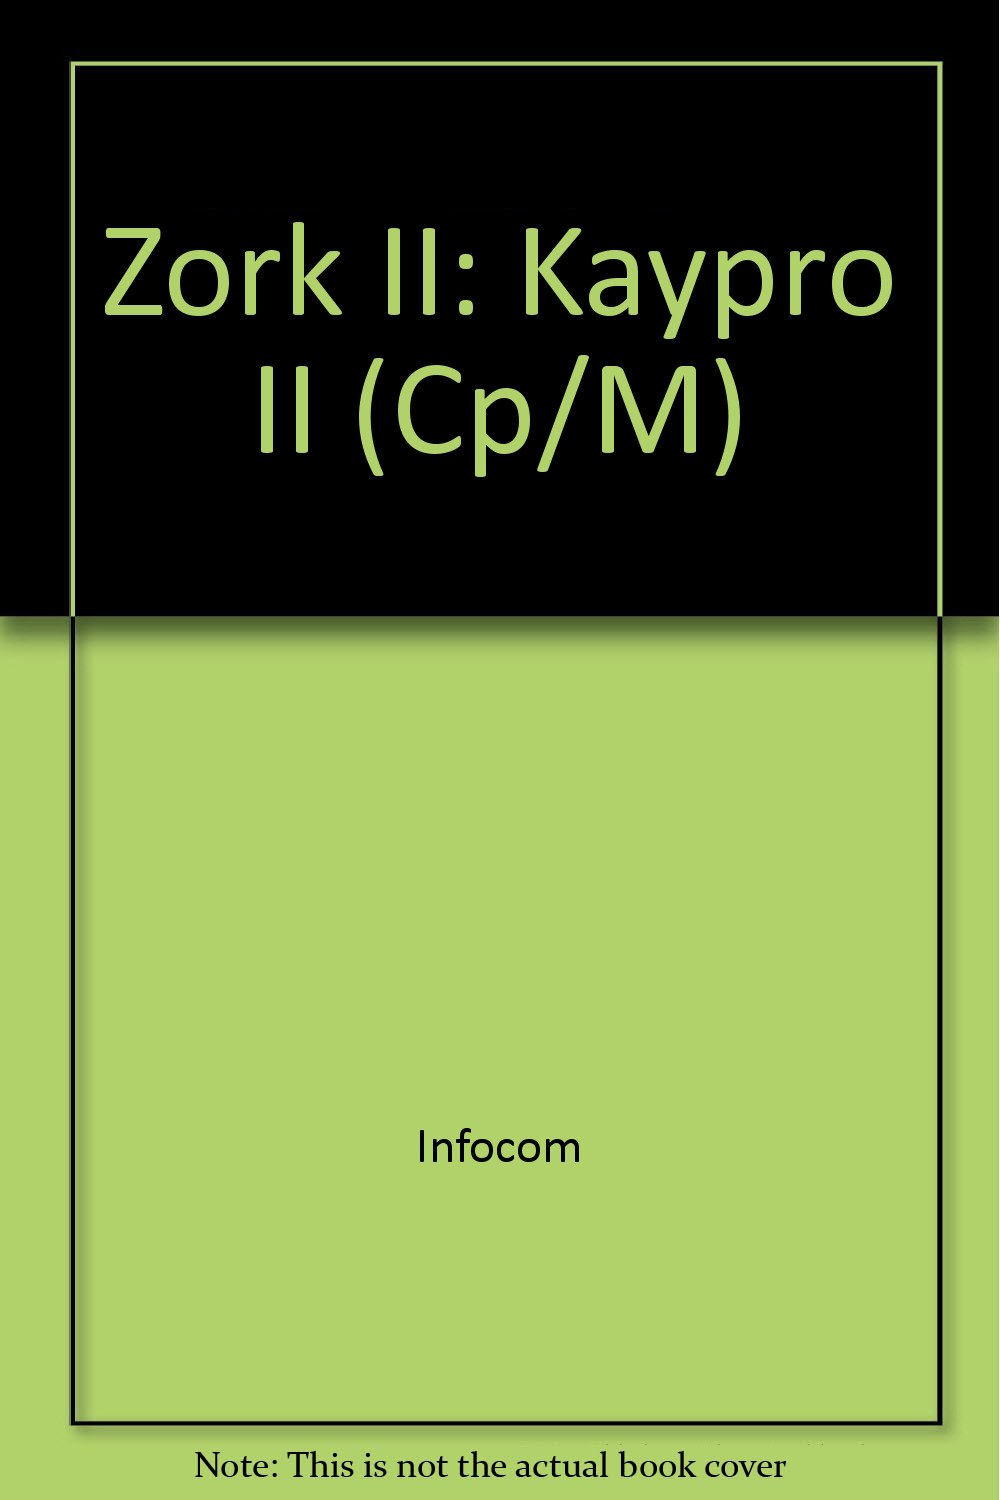 Buy Zork II: Kaypro II (CP/M) Book Online at Low Prices in